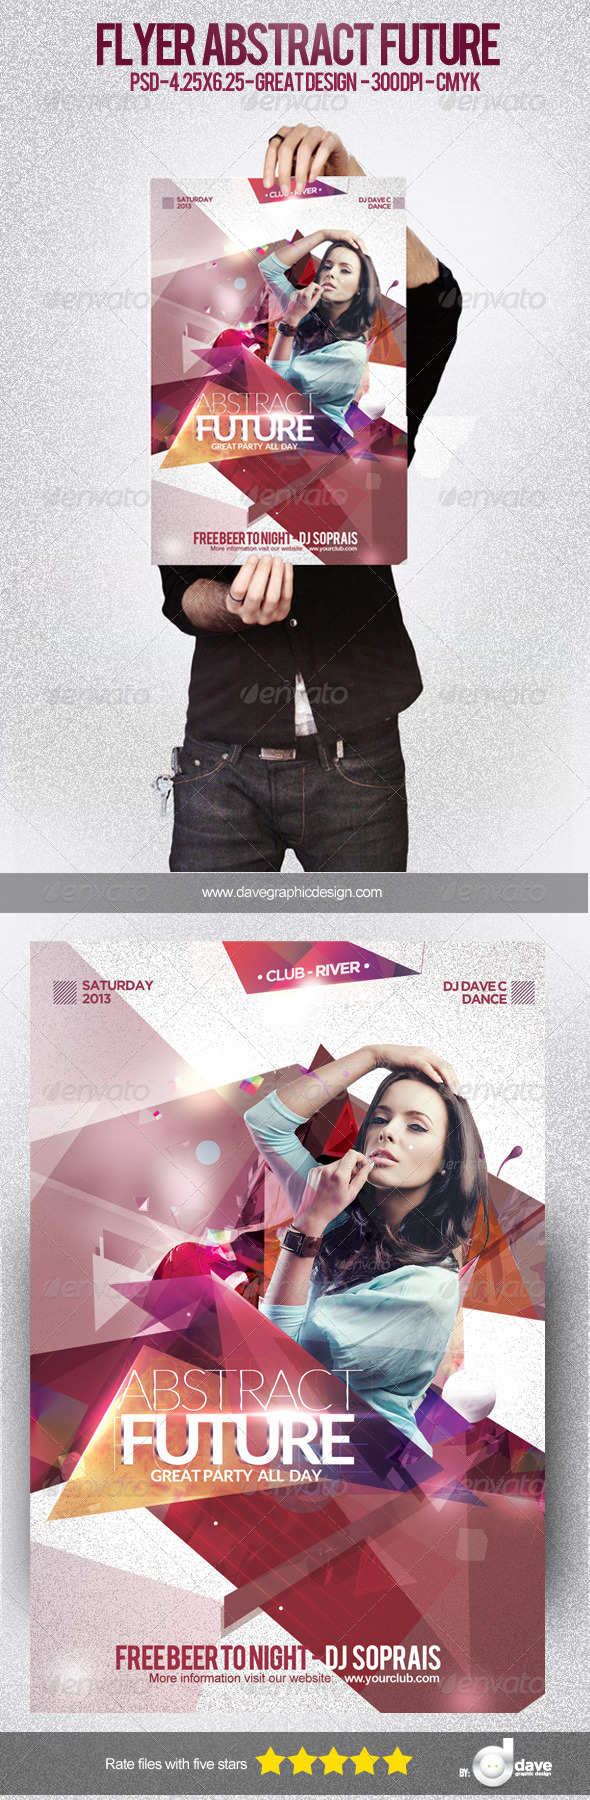 GraphicRiver Flyer Abstract Future 5141196